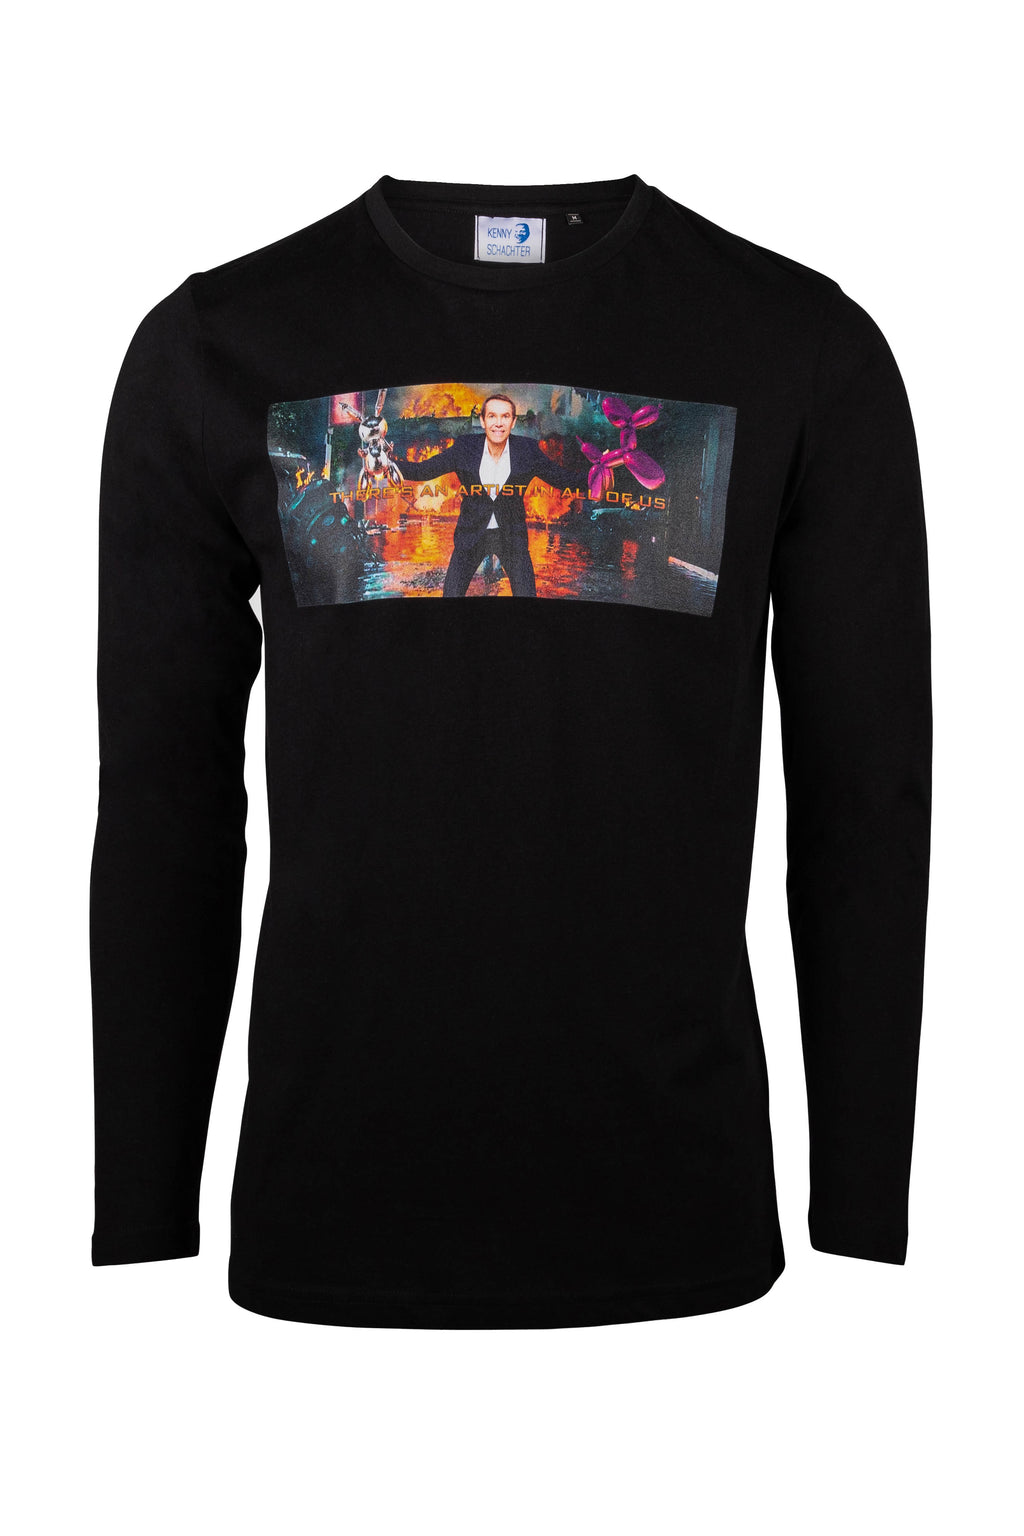 Kenny Schachter 'Call of Duty' Long Sleeve Top